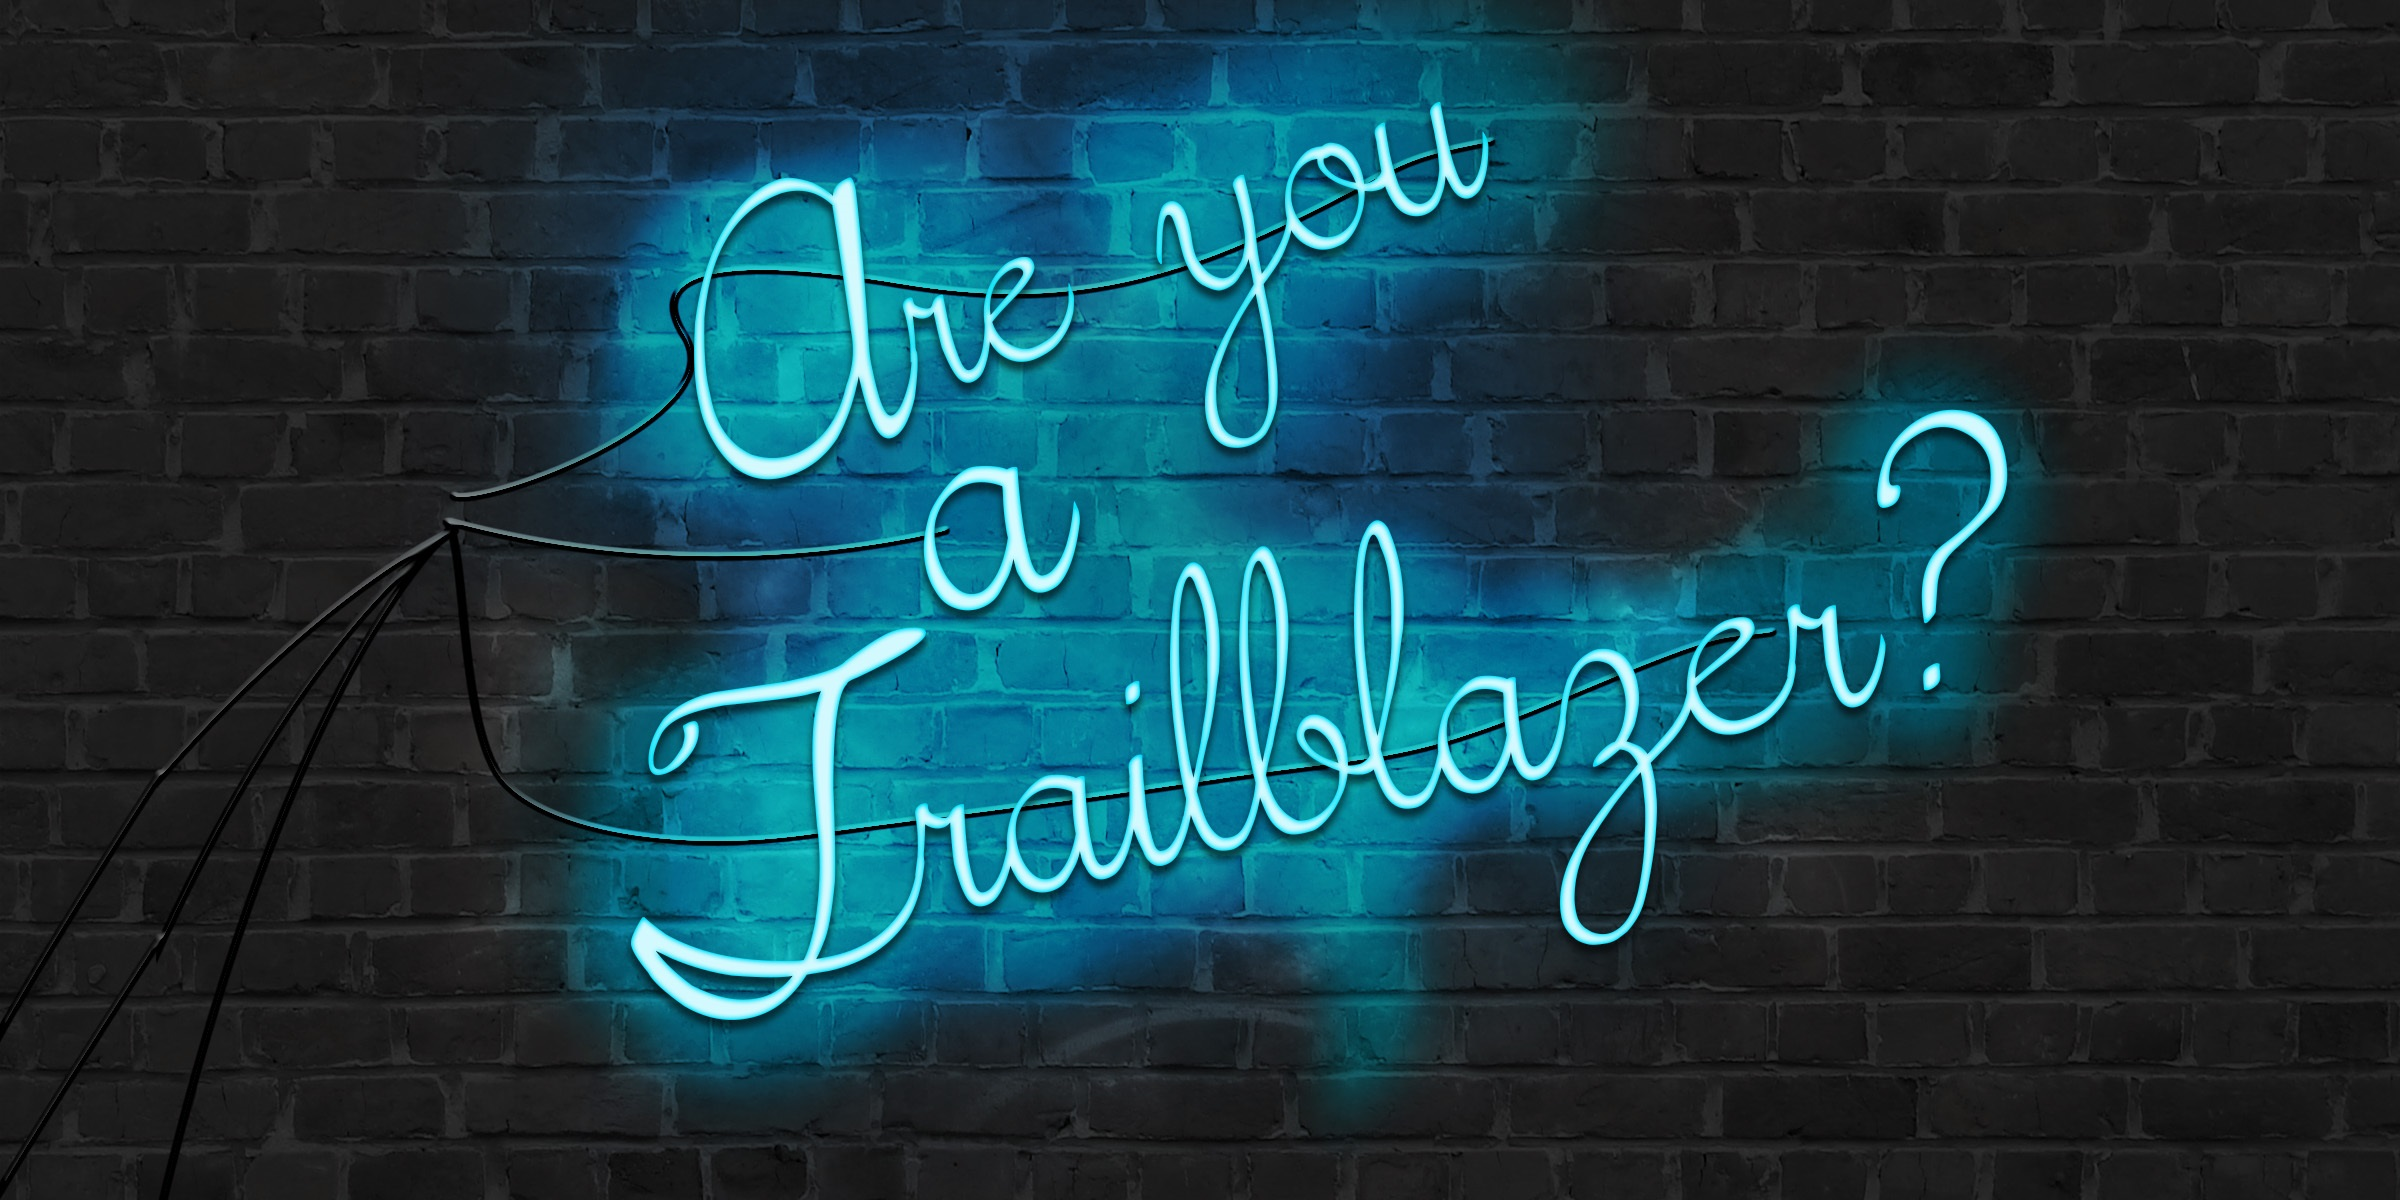 Are you a Trailblazer?